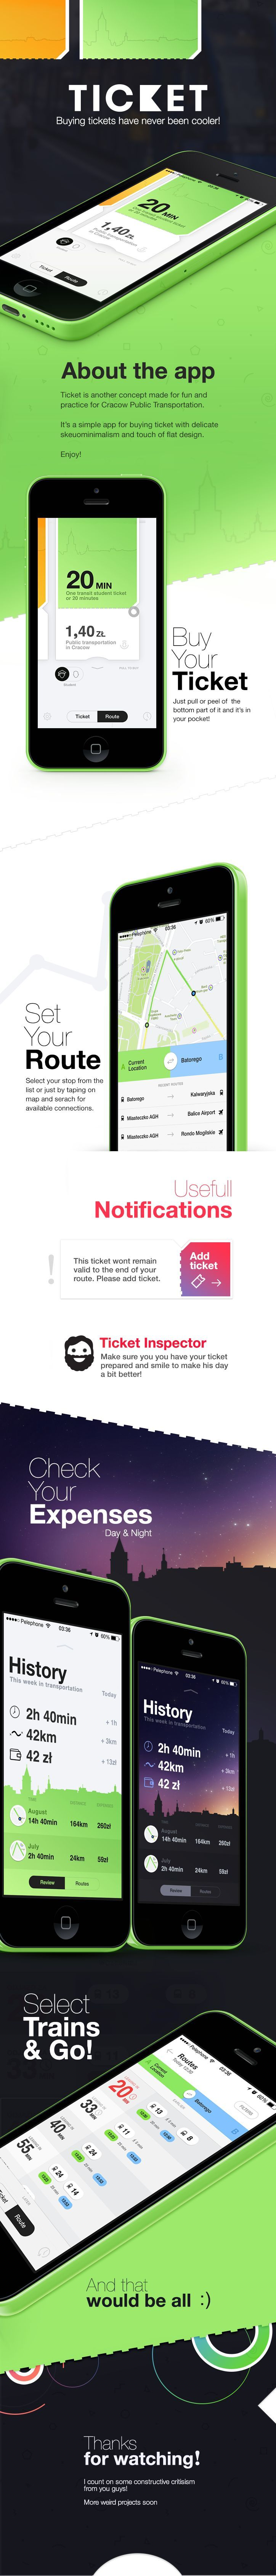 Ticket App https://www.behance.net/gallery/19678177/Ticket - love the day and night screens. If you like UX, design, or design thinking, check out theuxblog.com